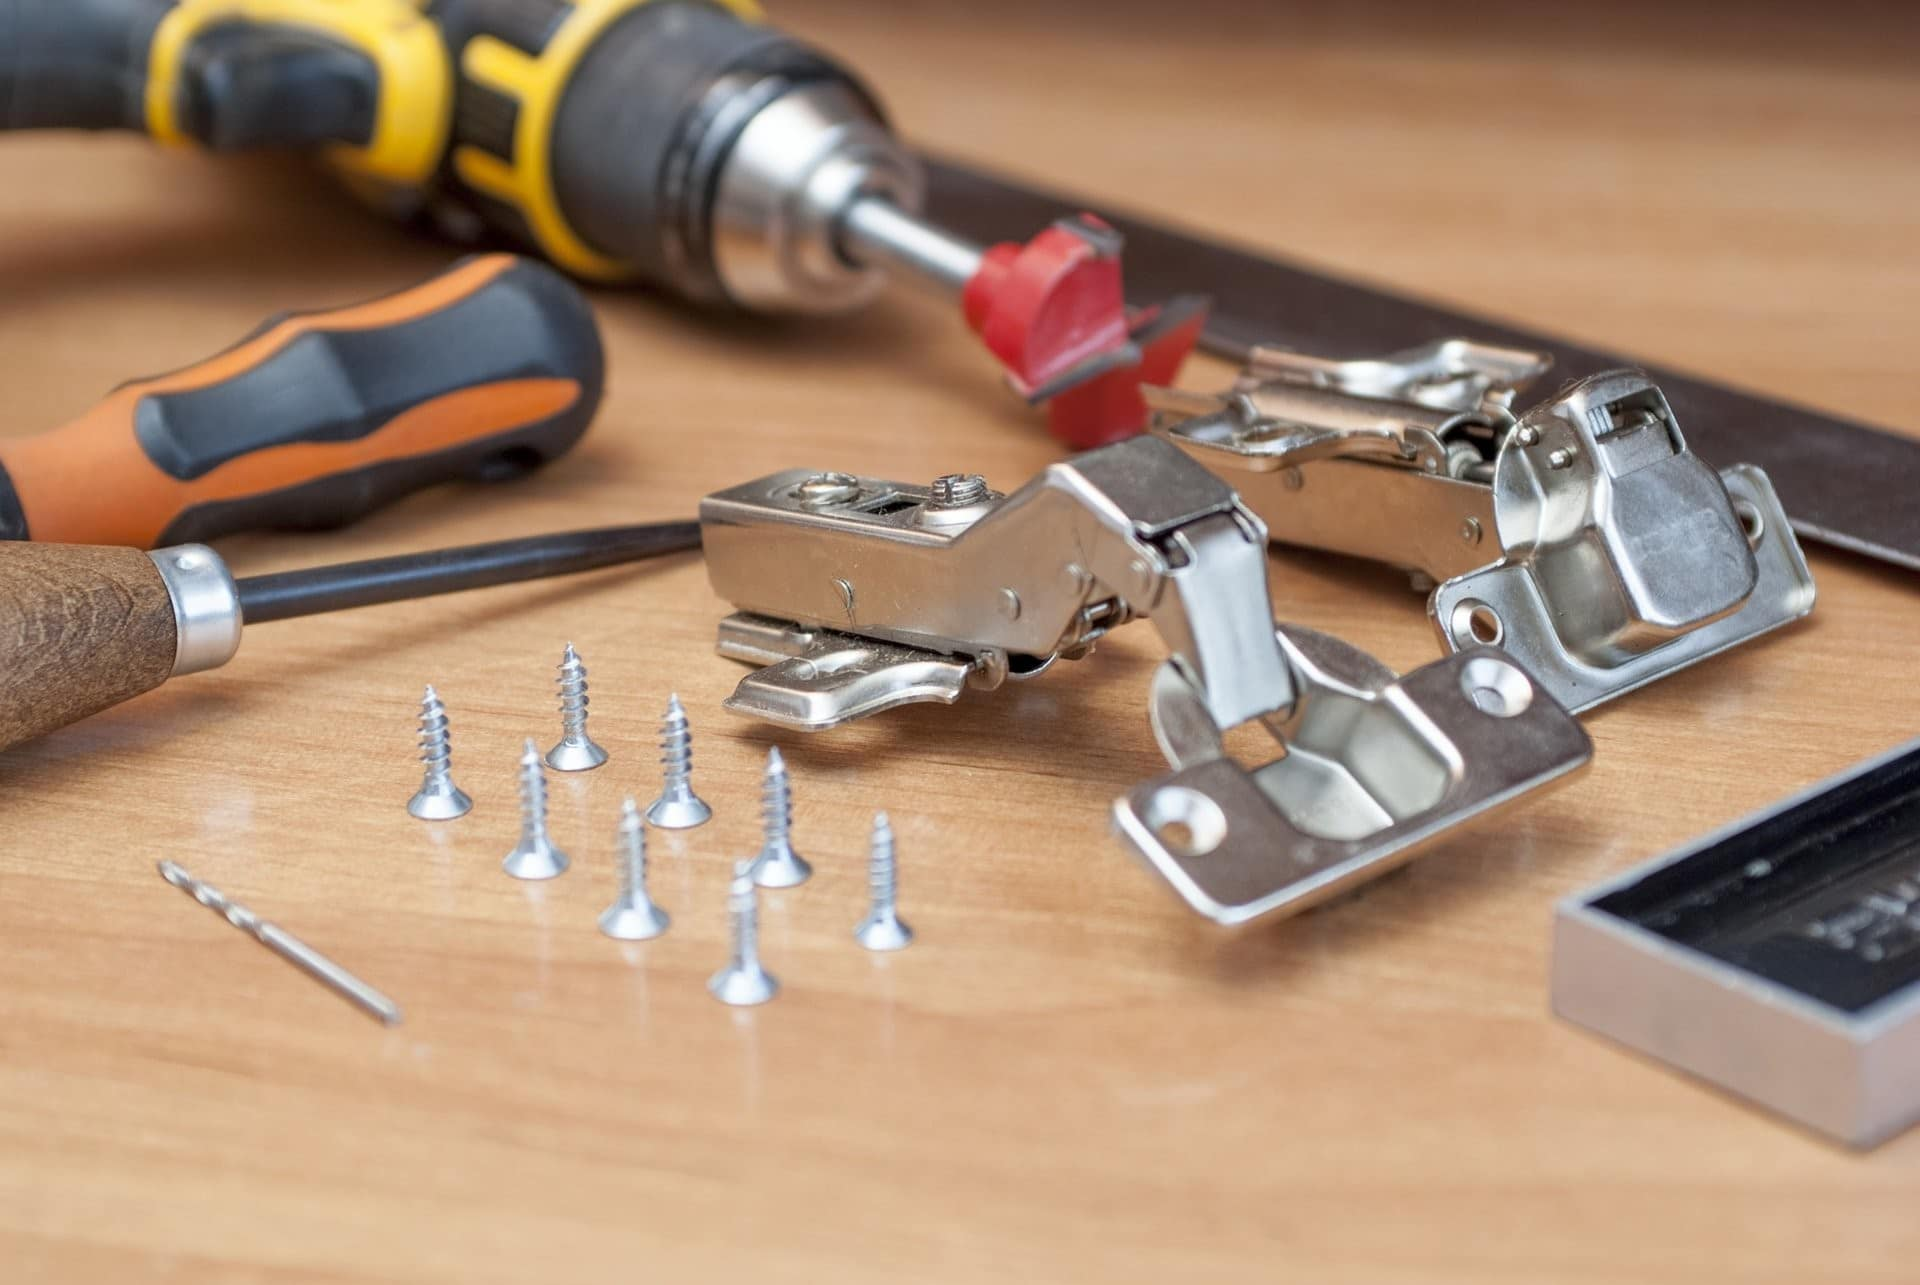 some metal tools for disassembling furniture in dmv area